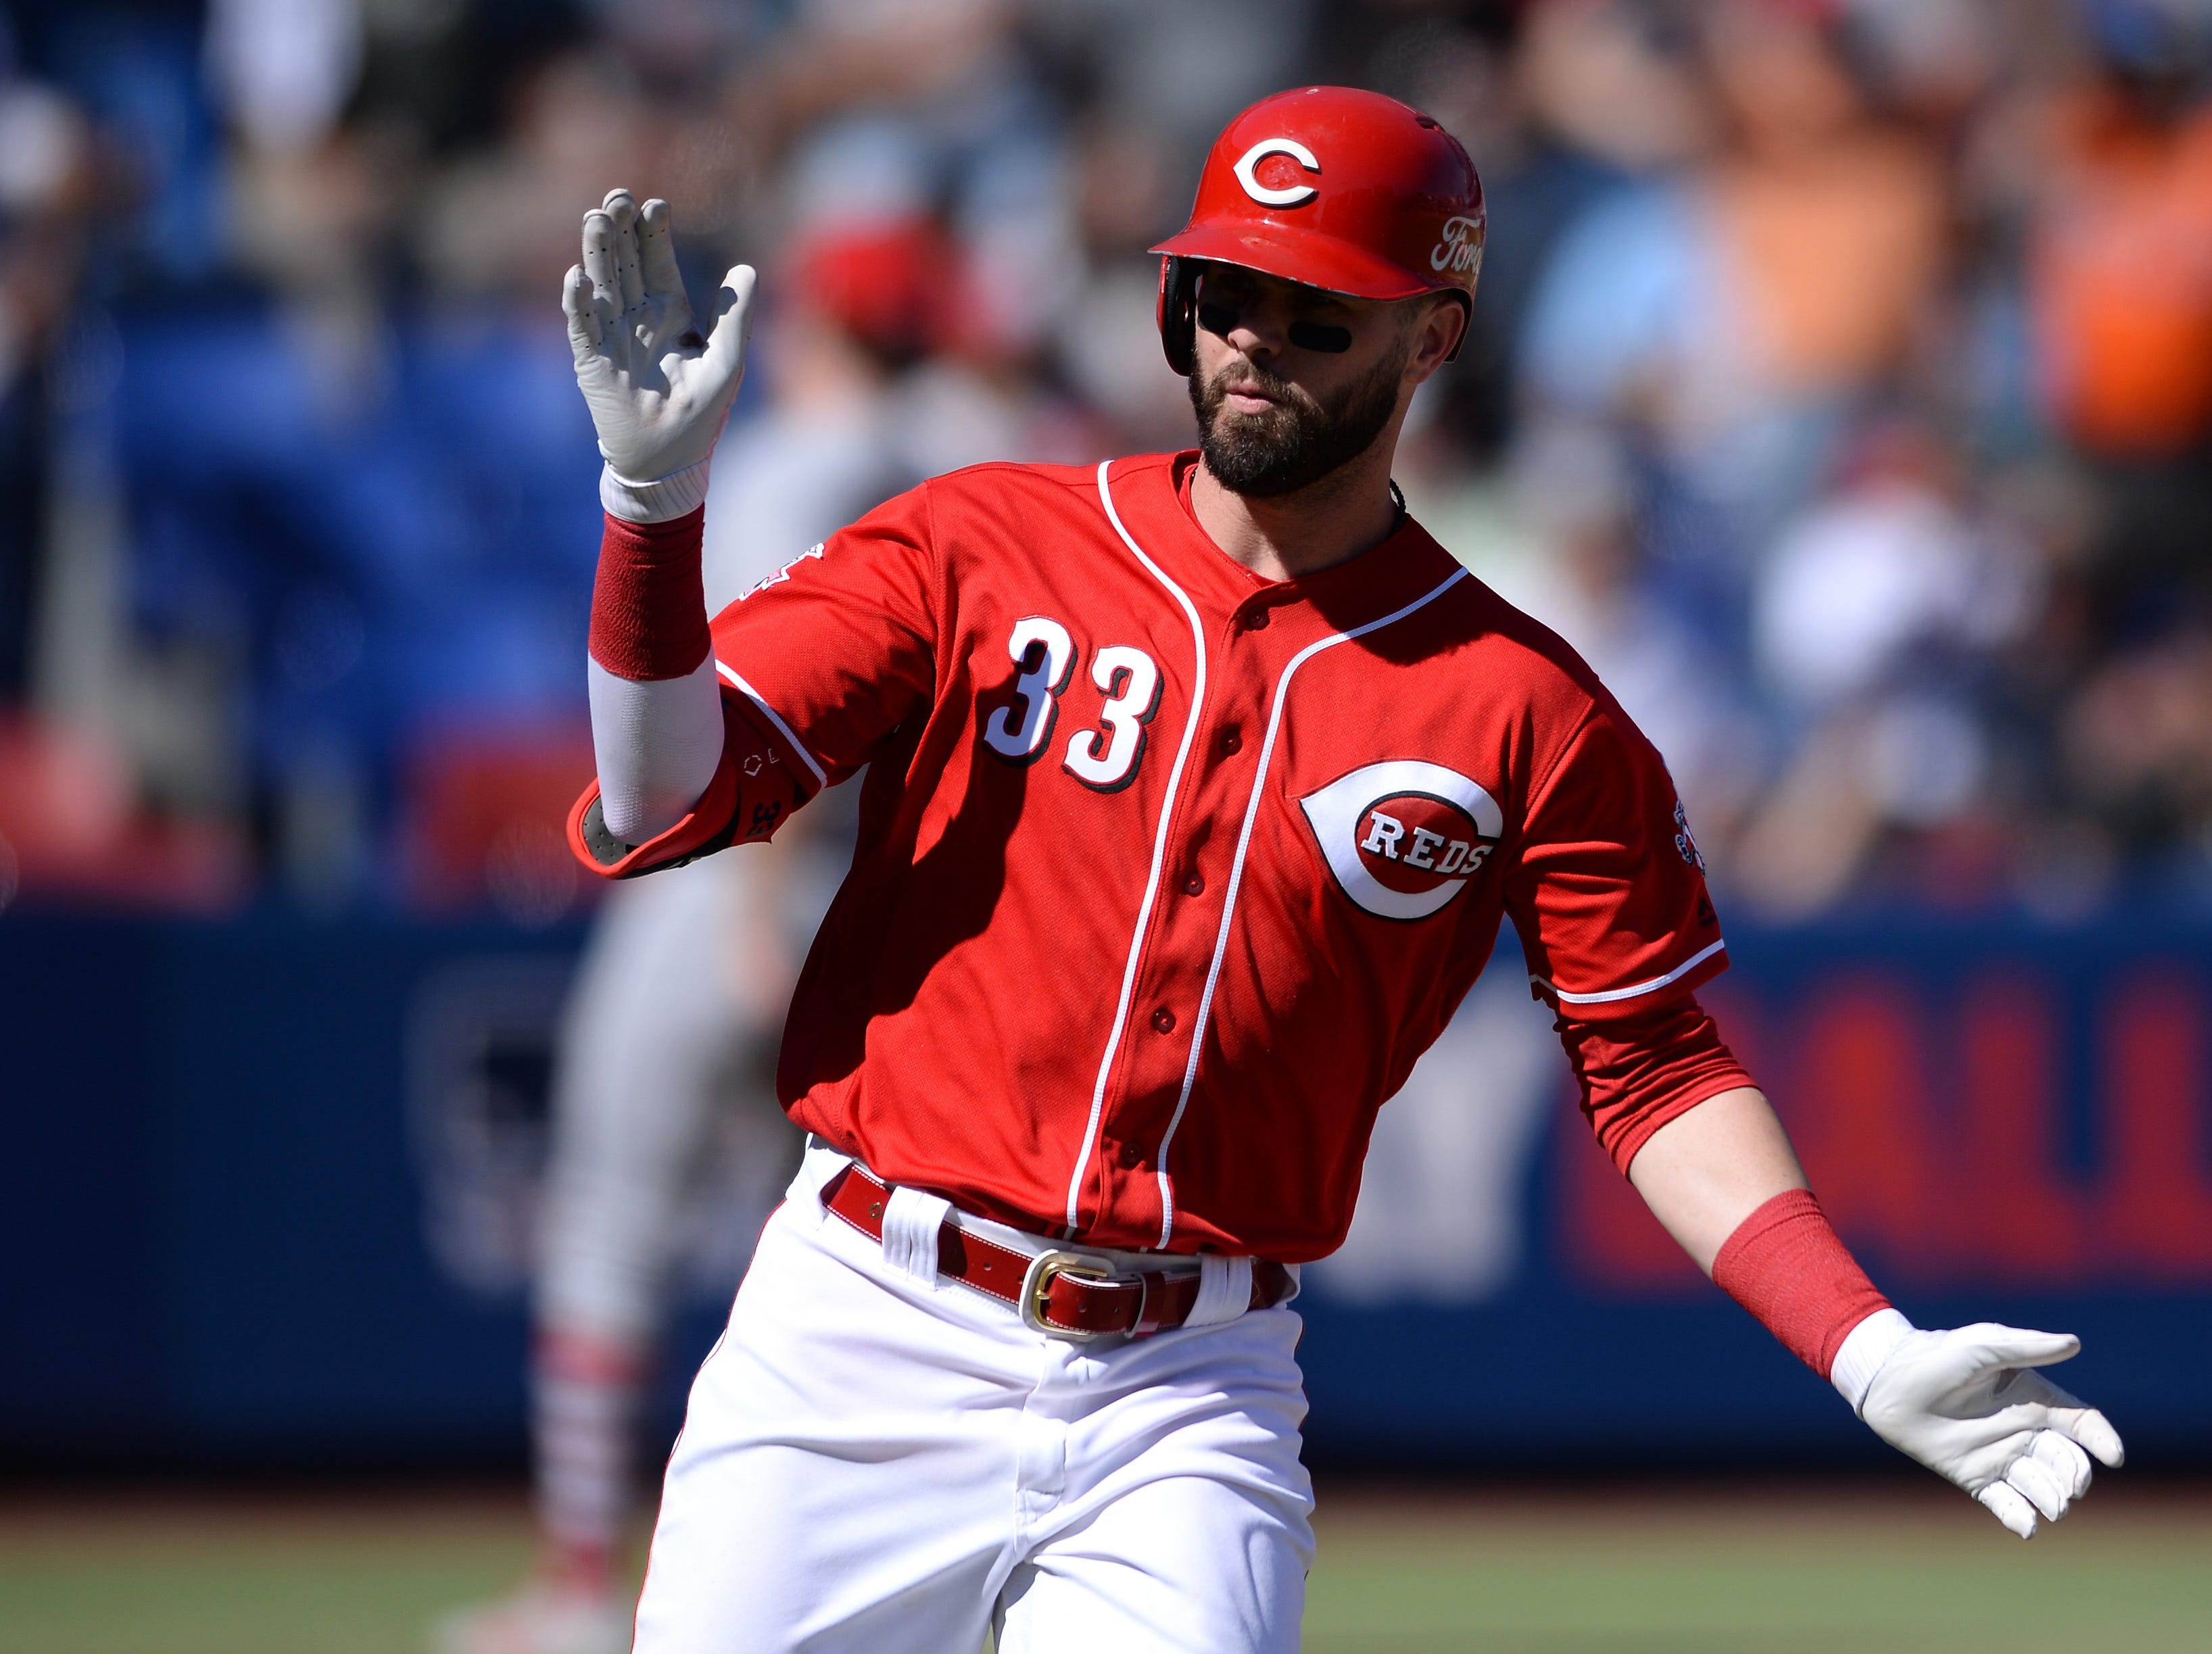 Cincinnati Reds left fielder Jesse Winker (33) reacts as he rounds the bases after hitting a three run home run during the fifth inning against the St. Louis Cardinals at Estadio de Beisbol Monterrey.